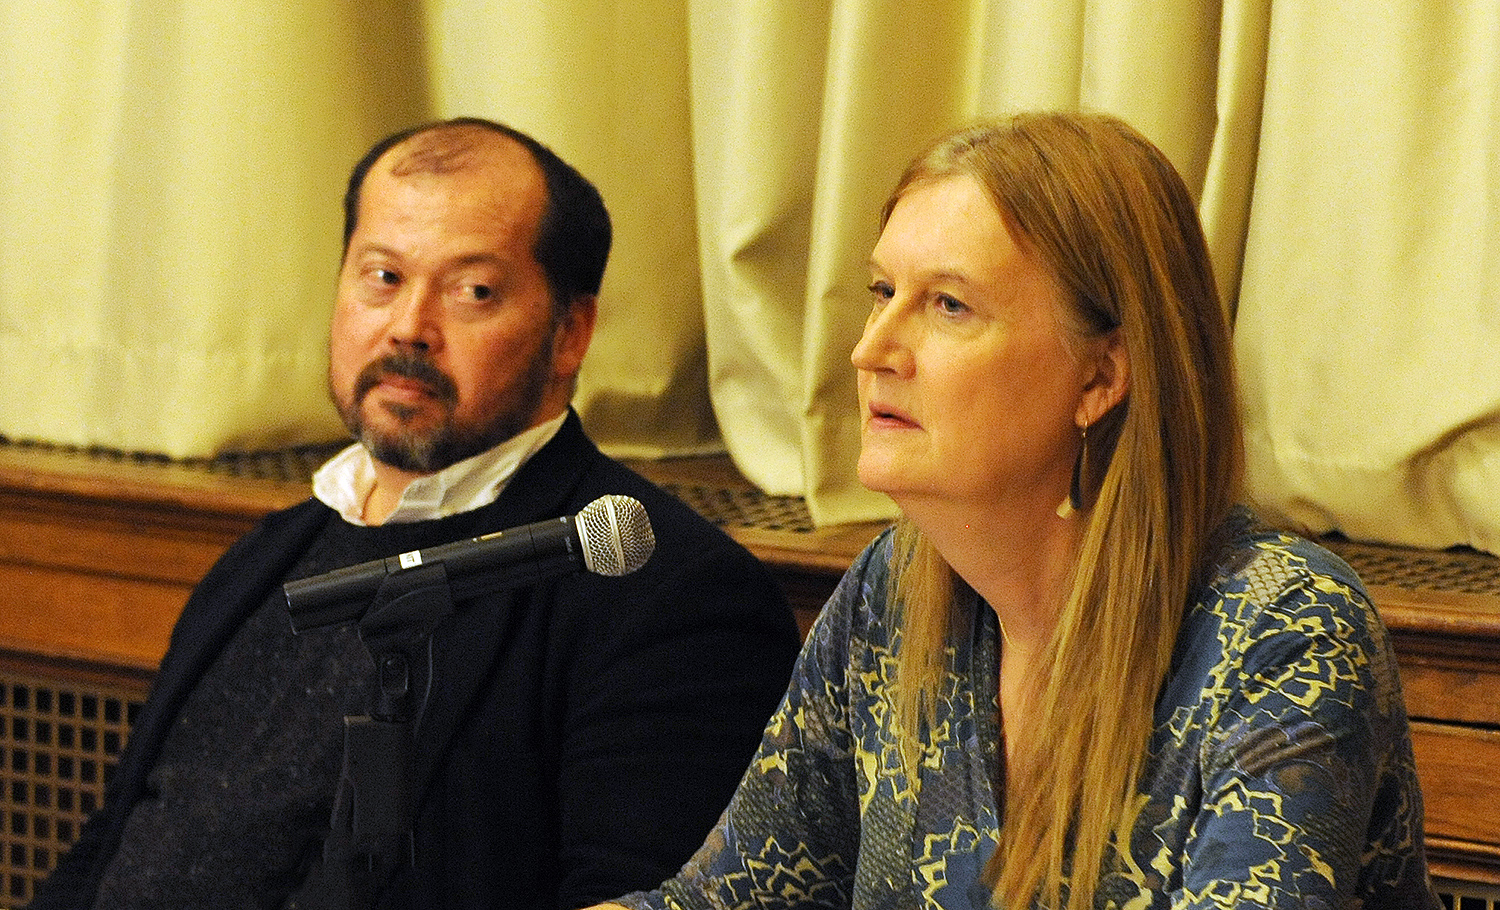 Wesleyan alumni Alexander Chee '89 and Jennifer Boylan '80 read from their recent work, discussed queer lives and storytelling, and shared their own experiences as LGBT writers at Wesleyan.